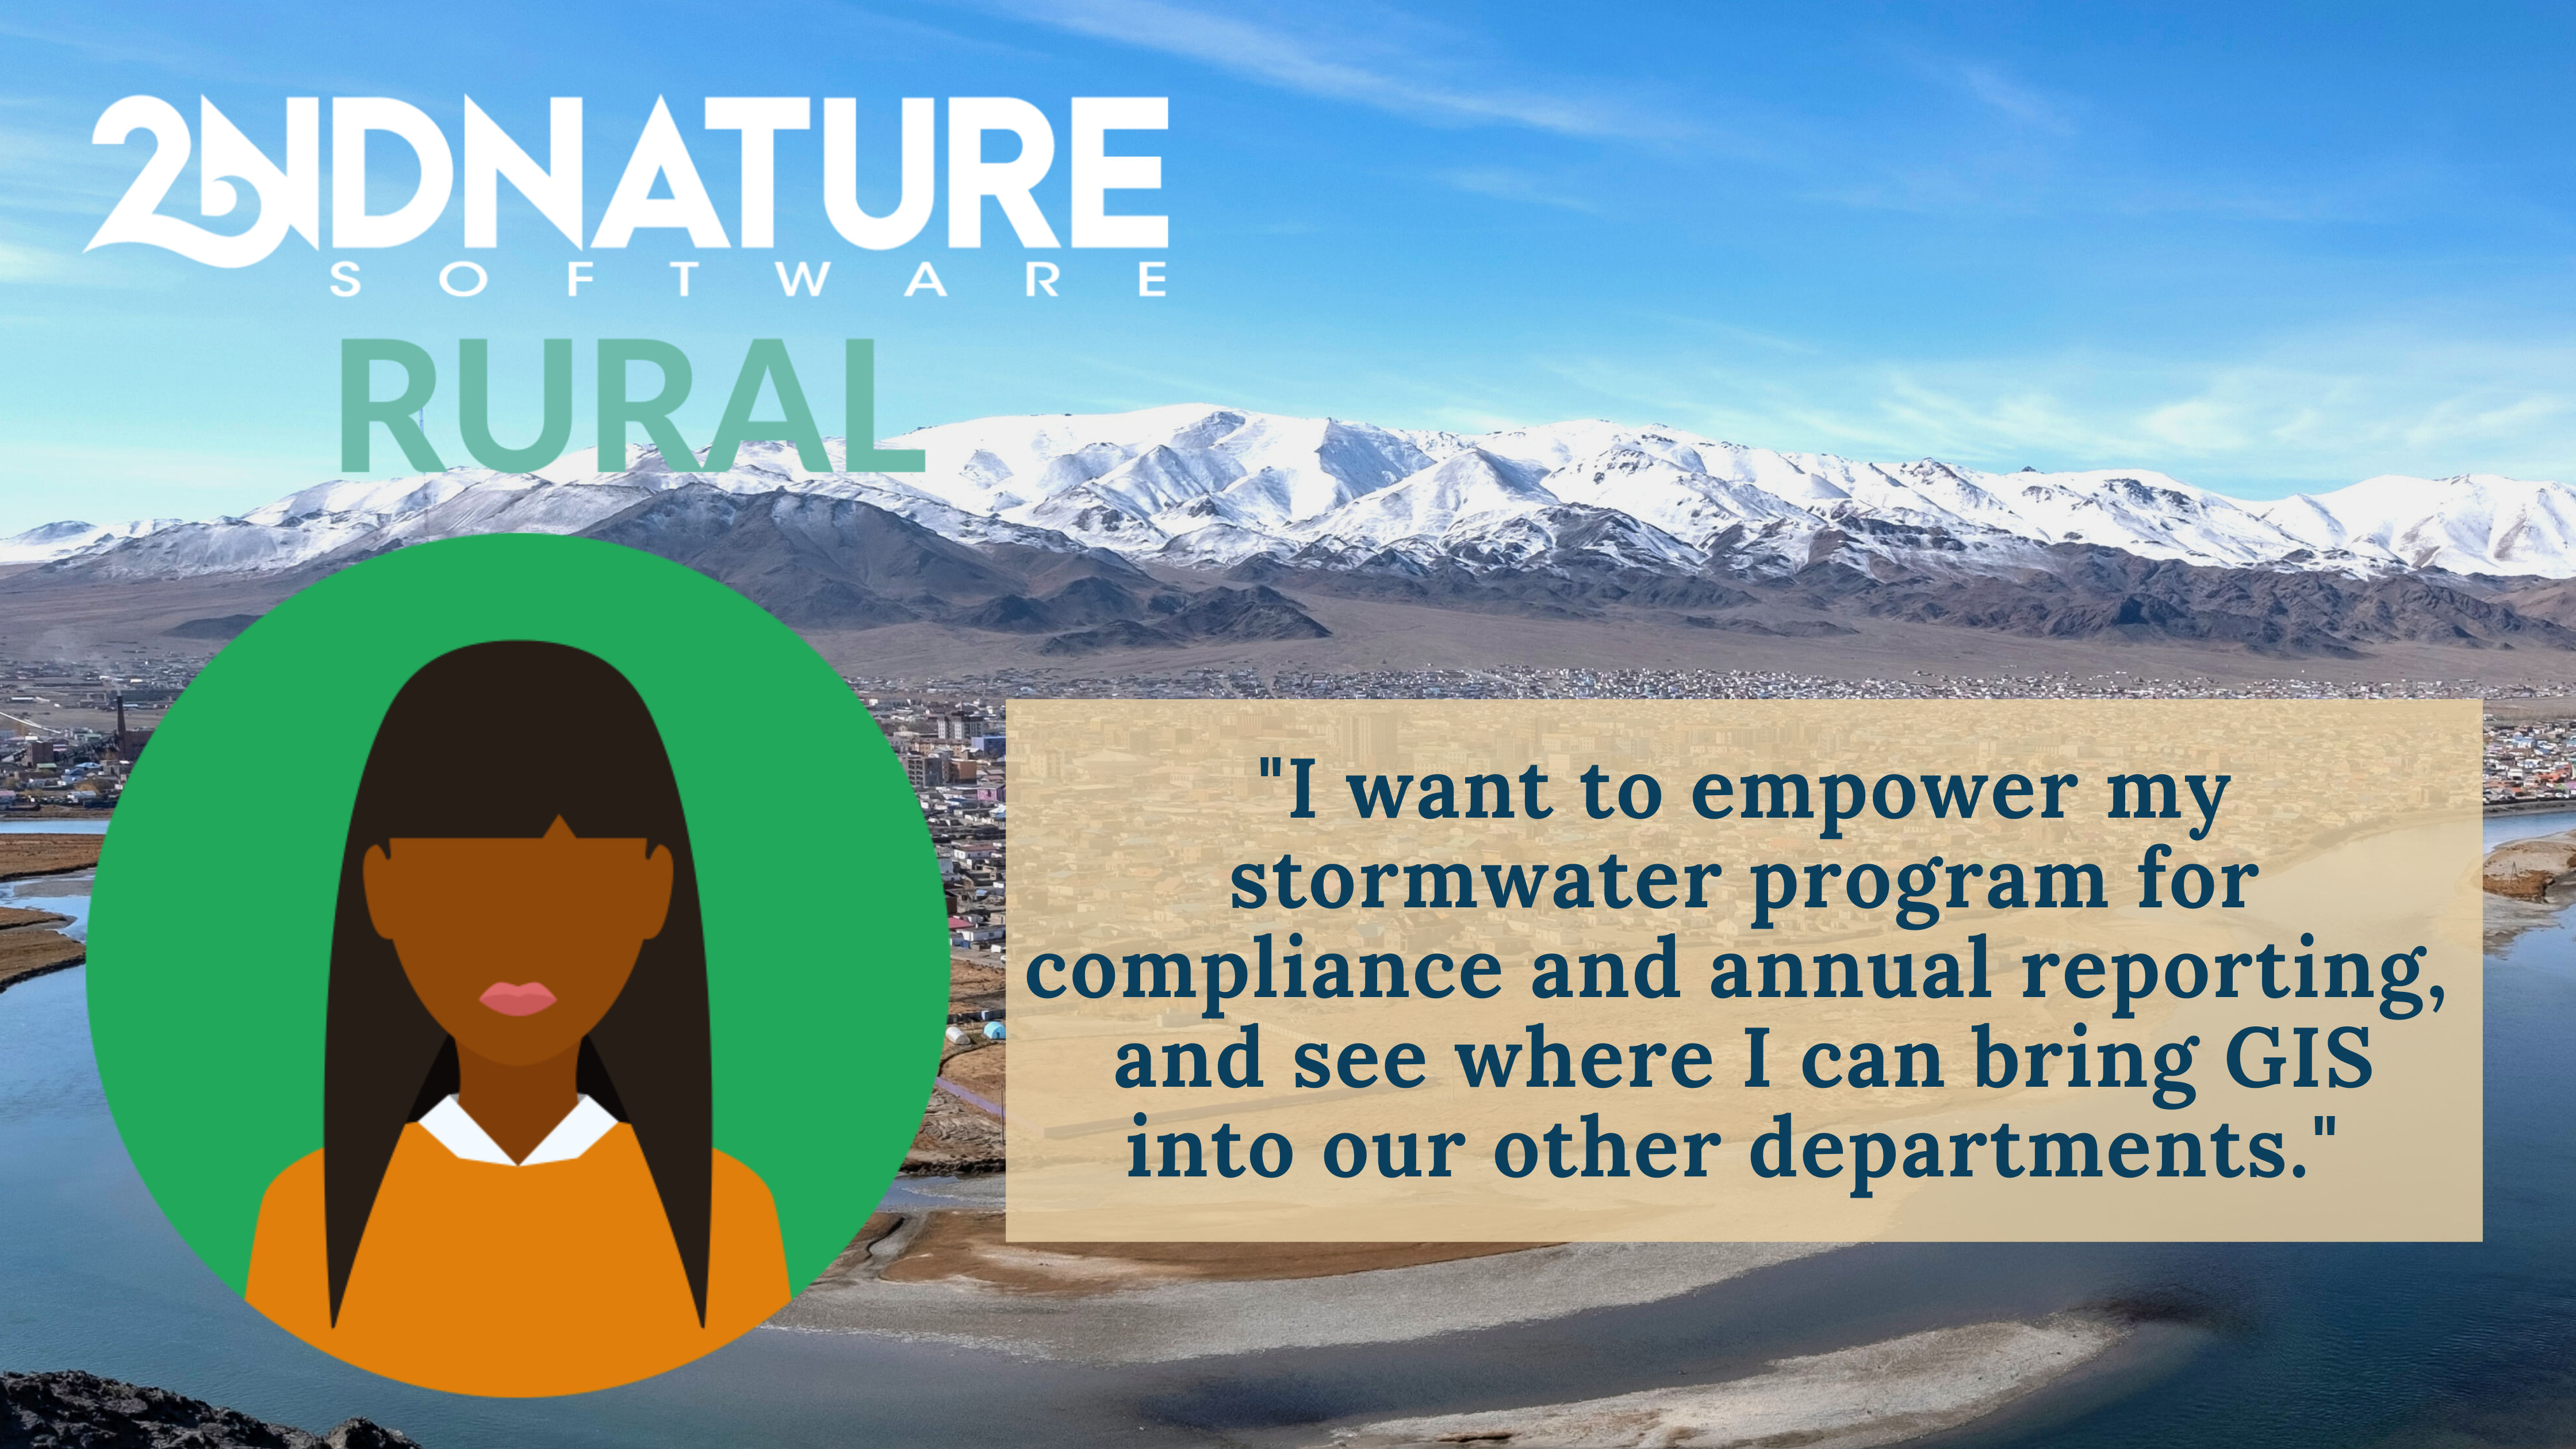 2NDNATURE RURAL Stormwater Management and Compliance Software